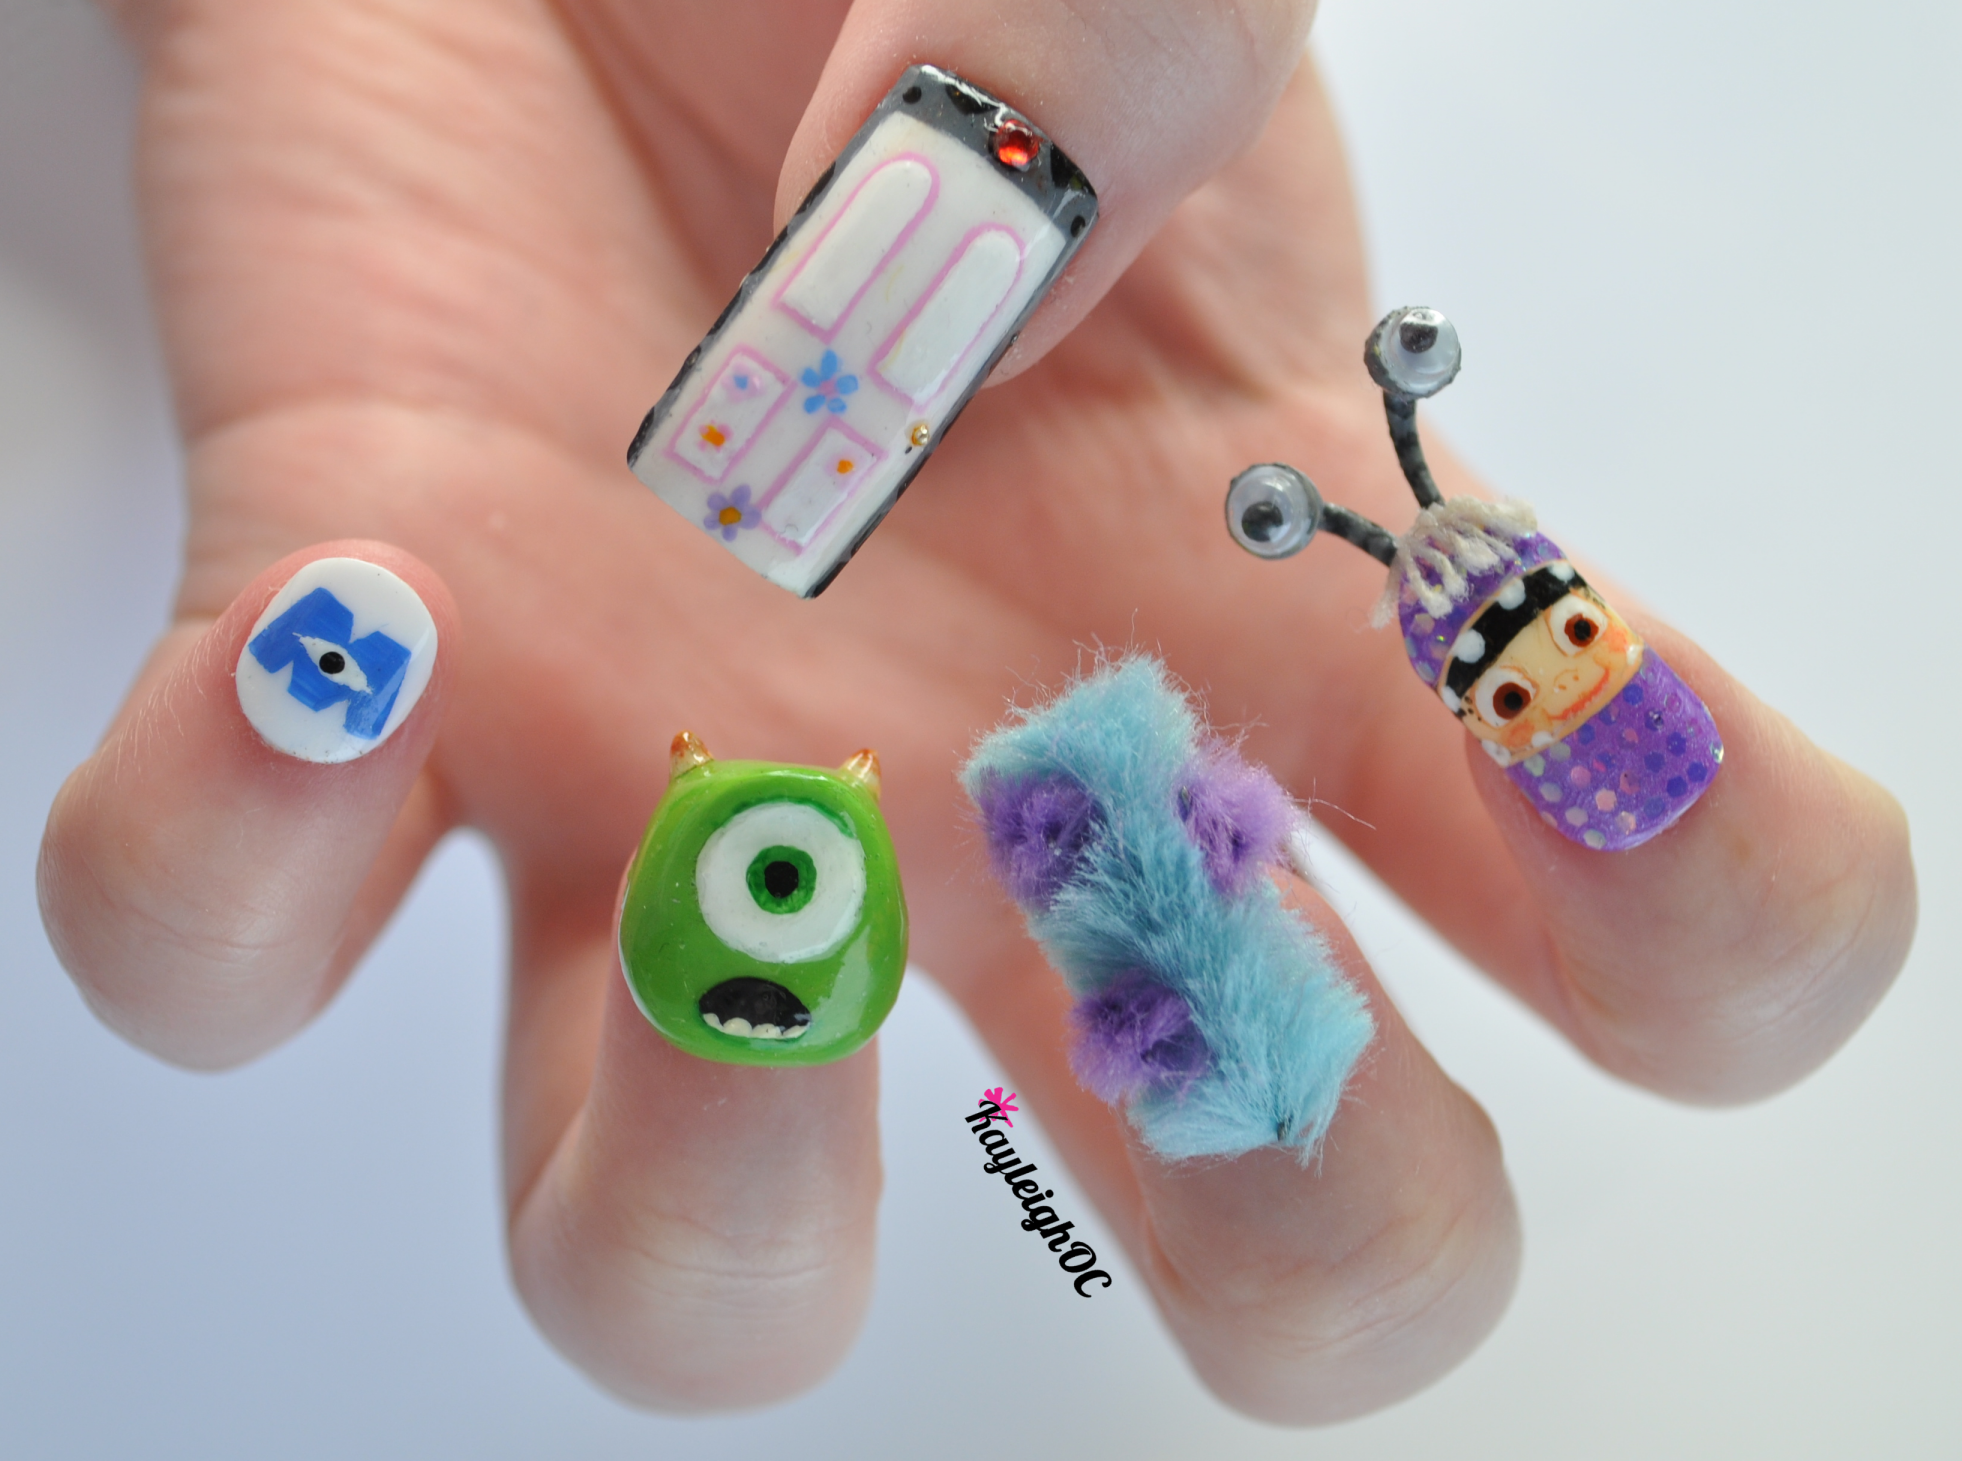 Monsters, Inc. 3D Nail Art by KayleighOC on DeviantArt